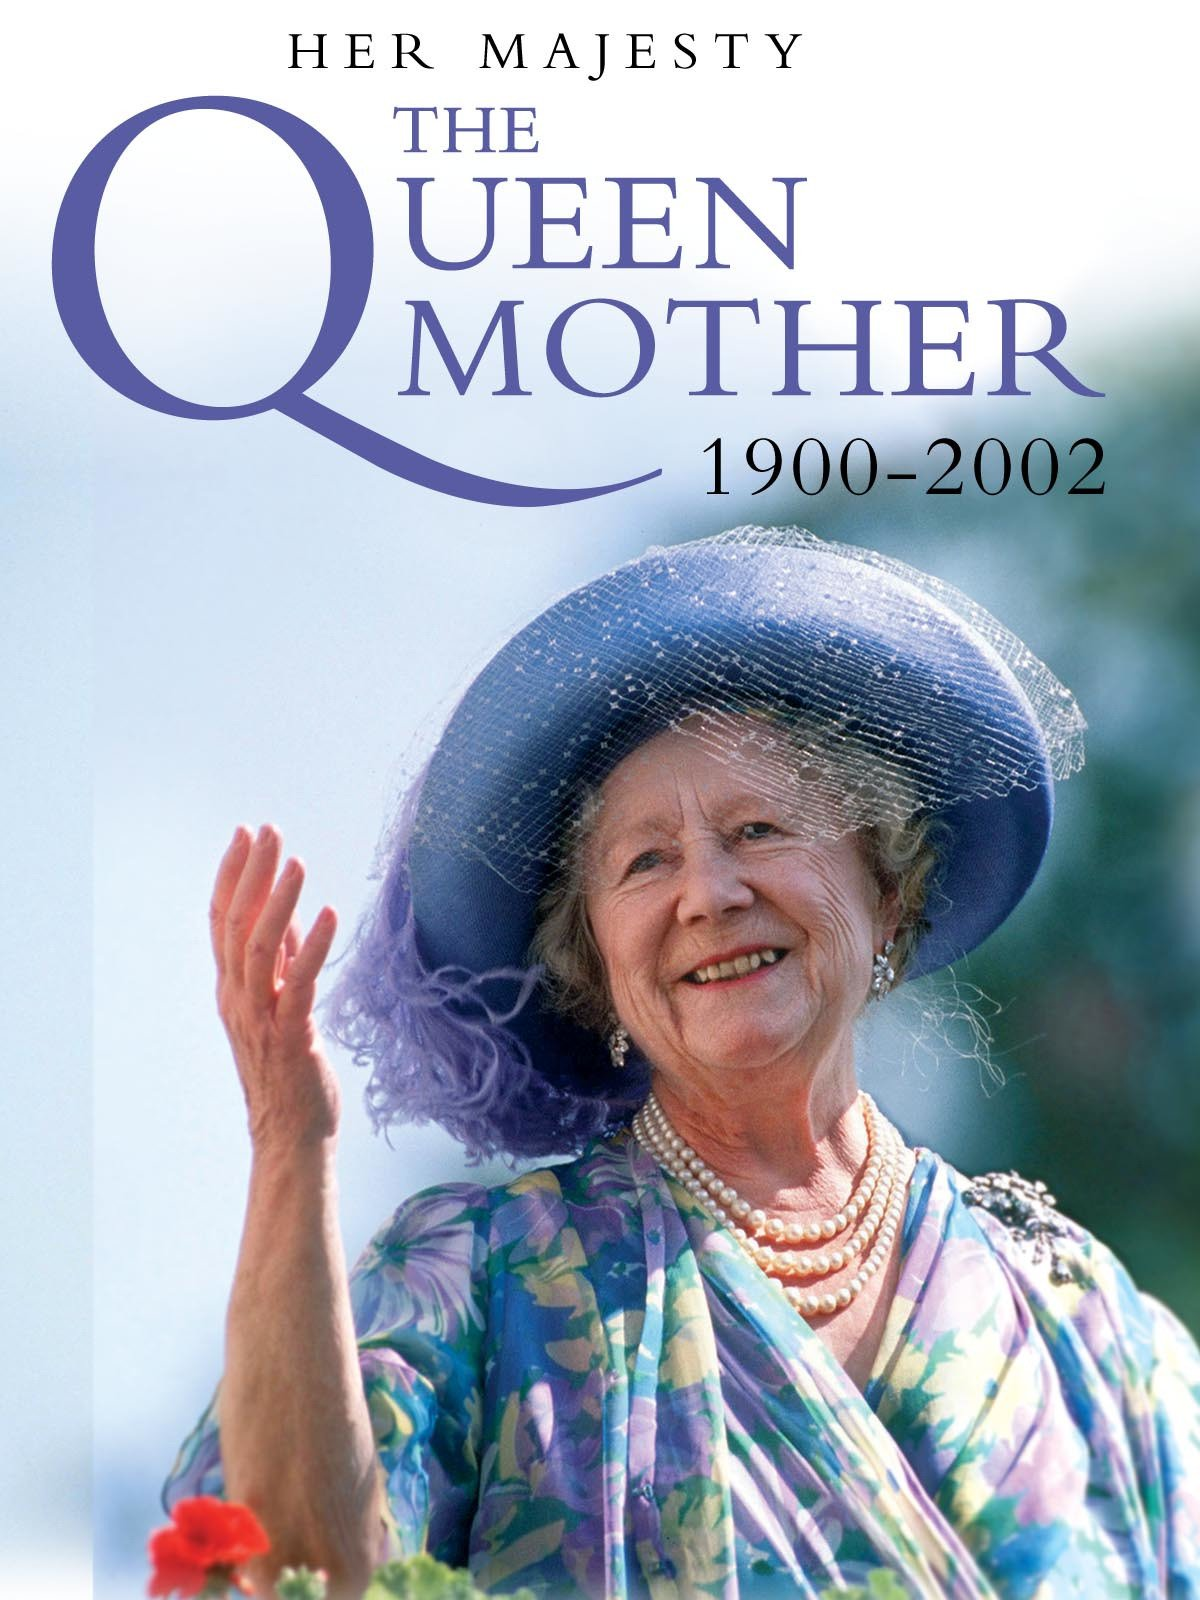 Her Majesty The Queen Mother 1900-2002 on Amazon Prime Video UK